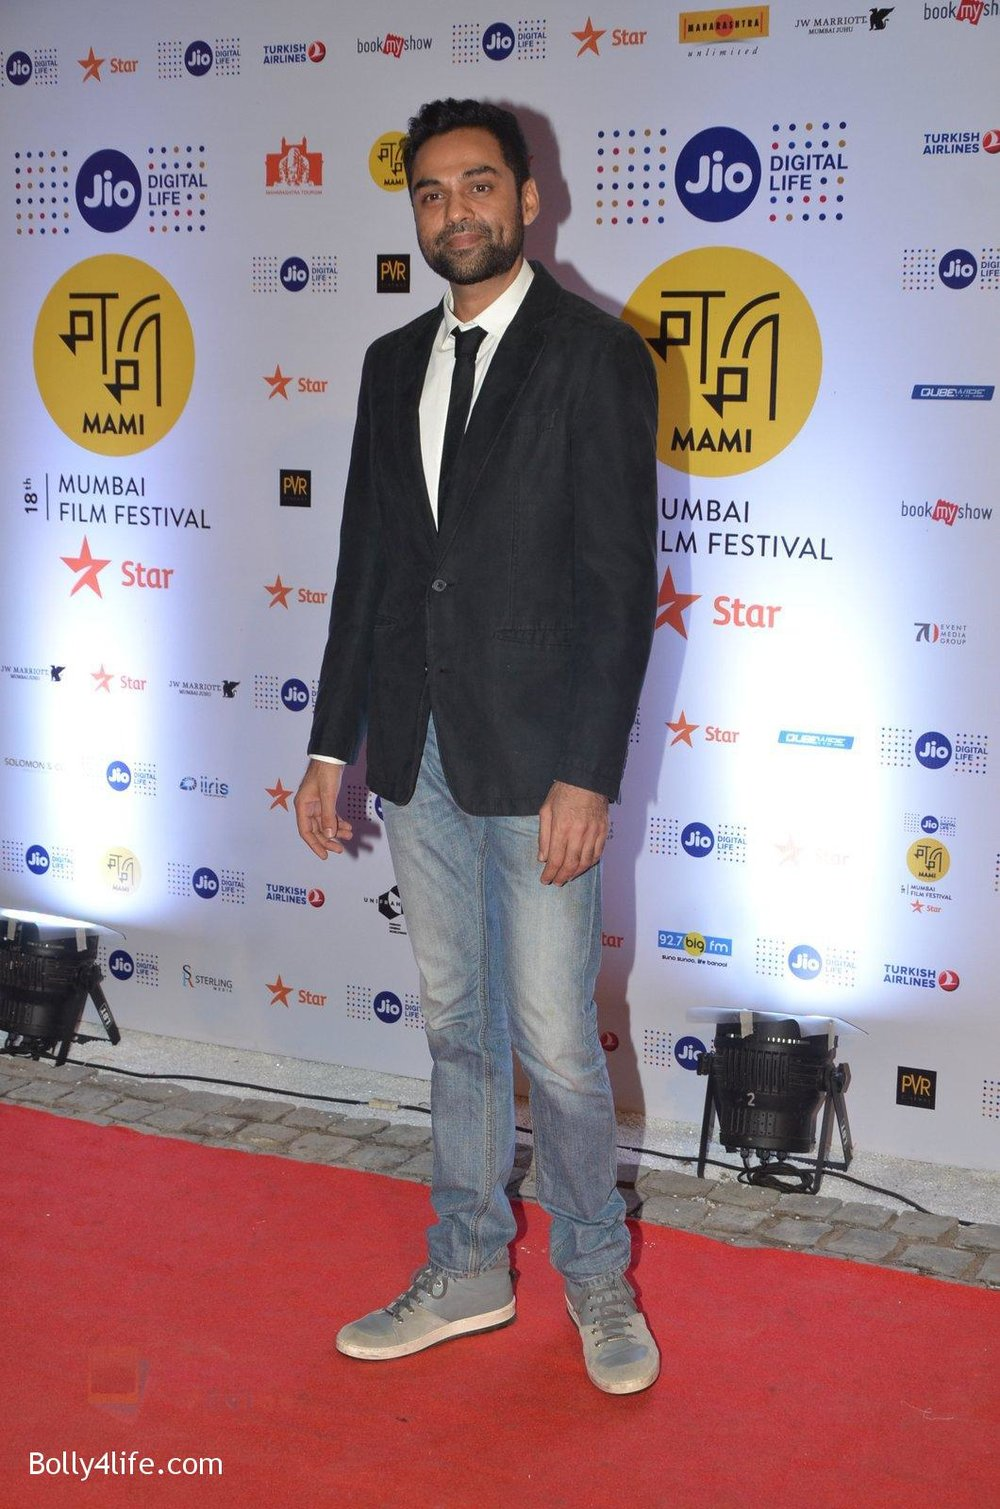 Abhay-Deol-at-MAMI-Film-Festival-2016-on-20th-Oct-2016-132.jpg